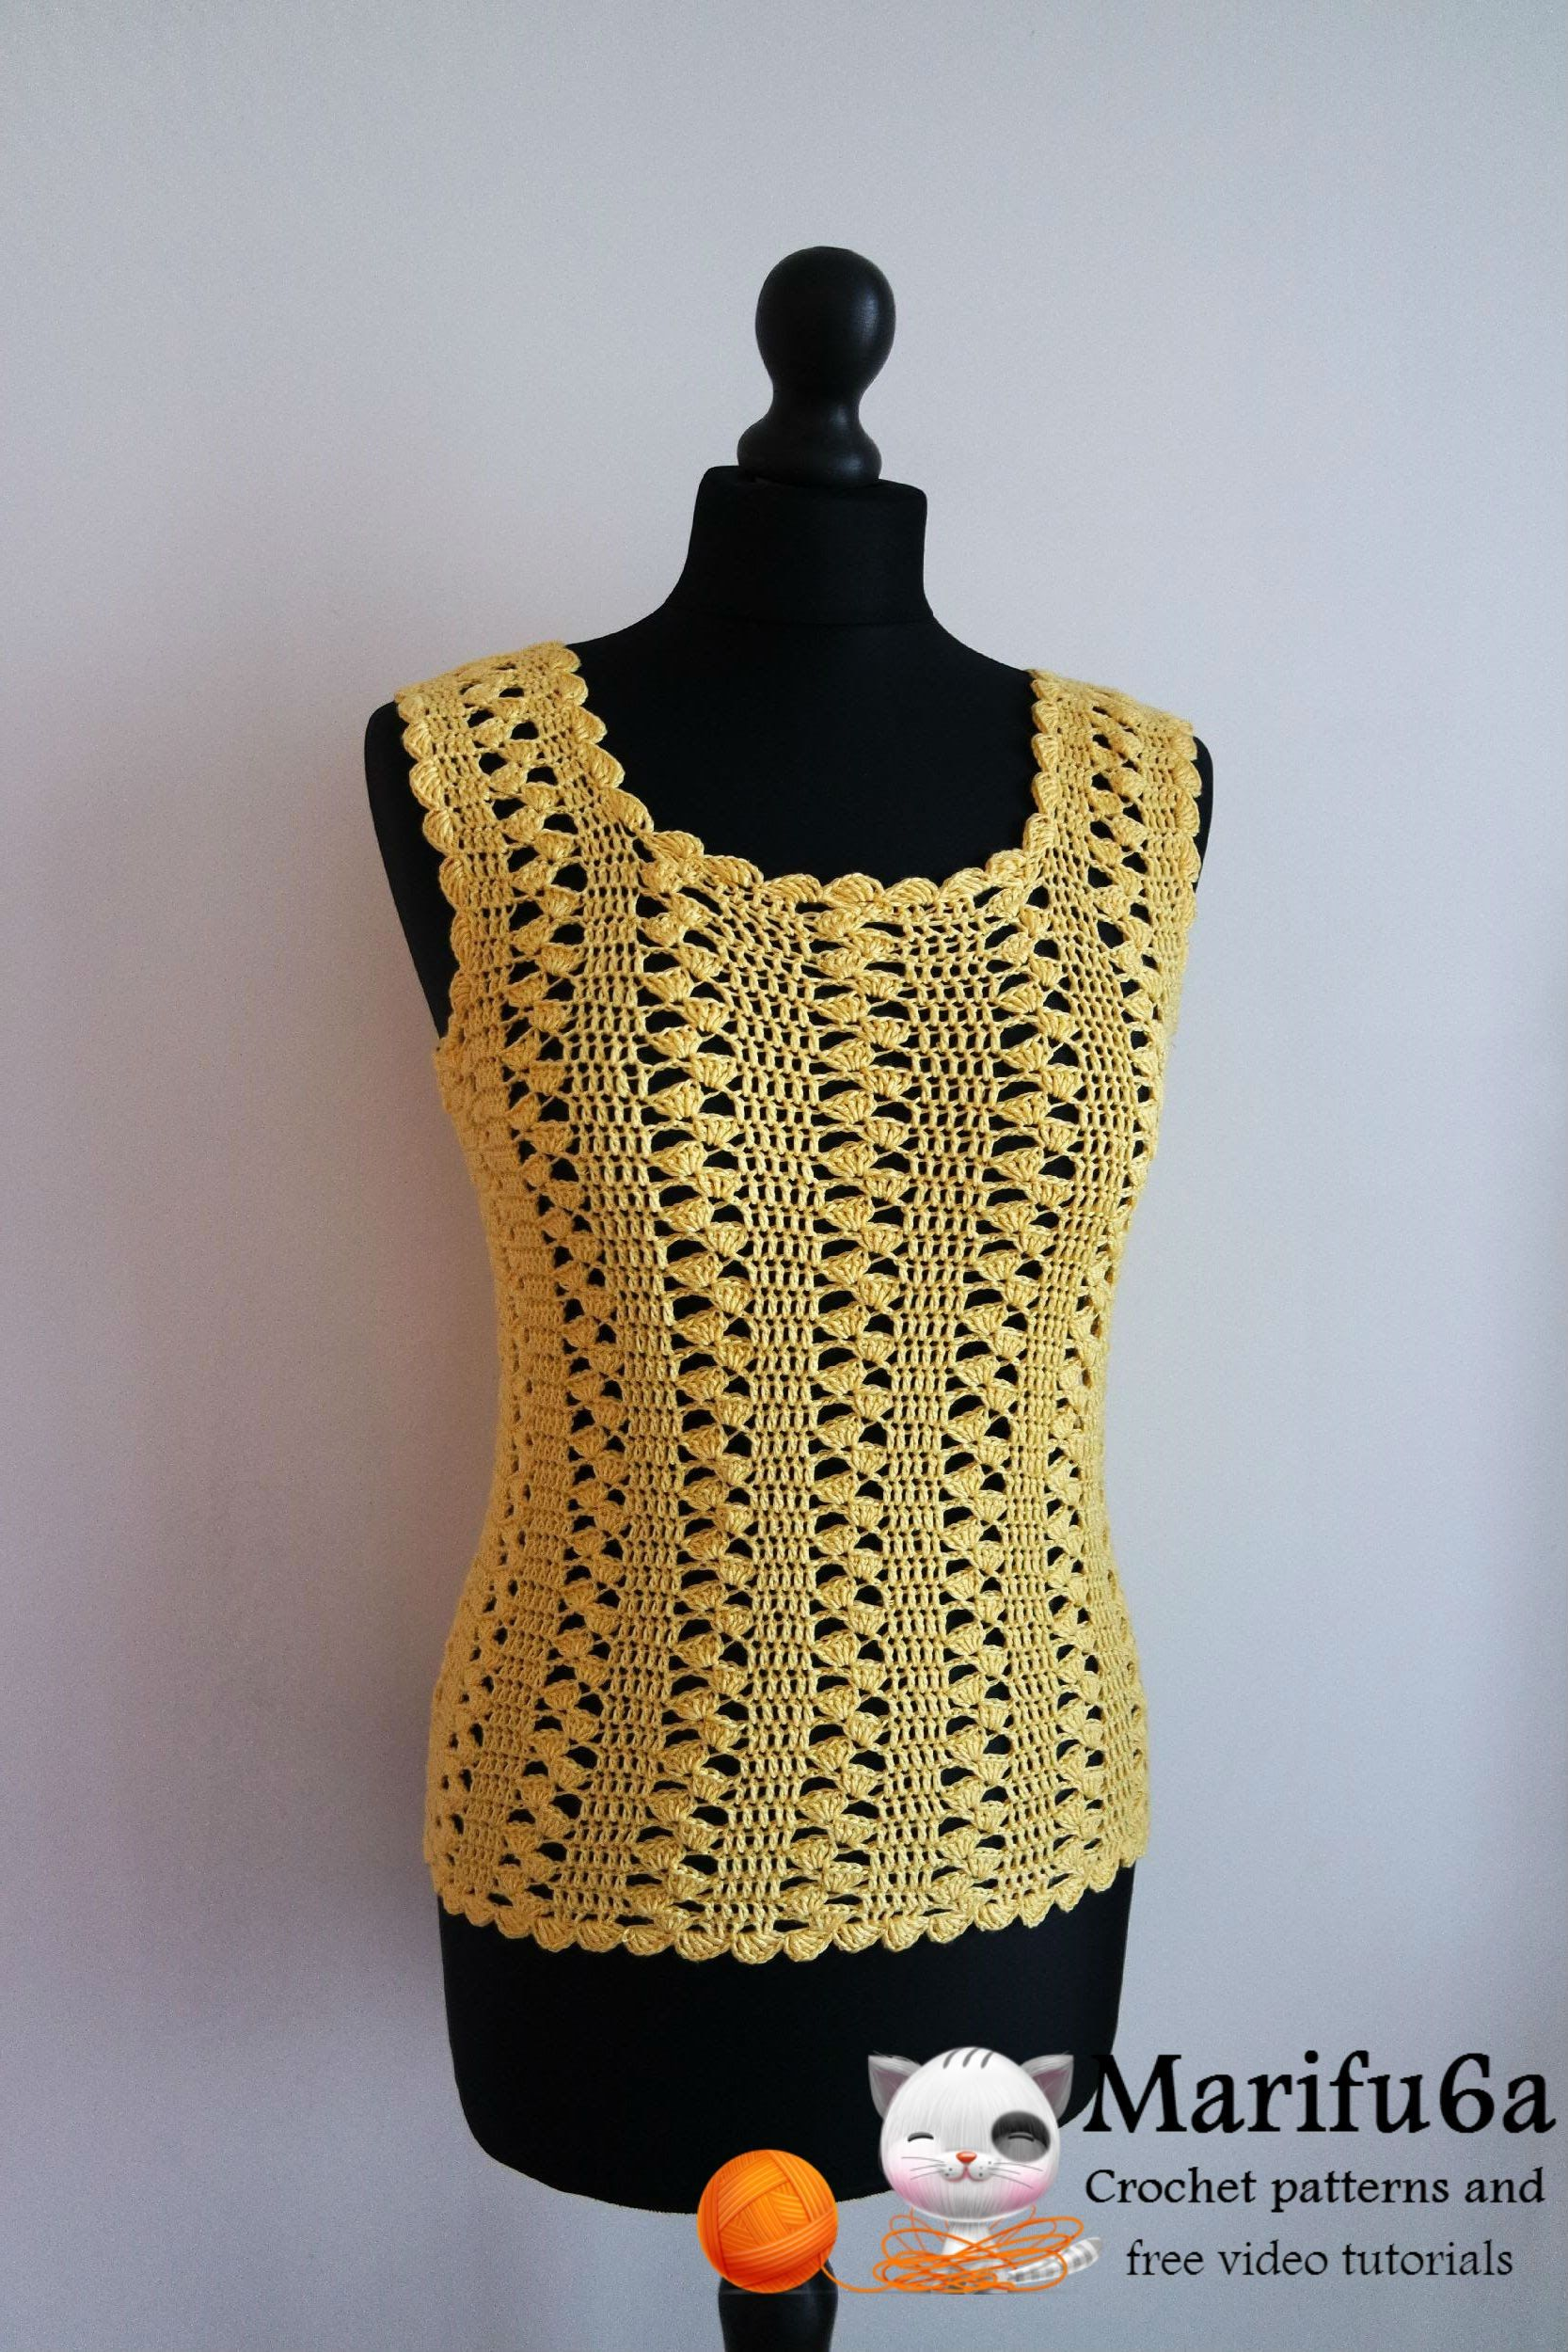 How to crochet easy yellow top pattern free tutorial by marifu6a ...